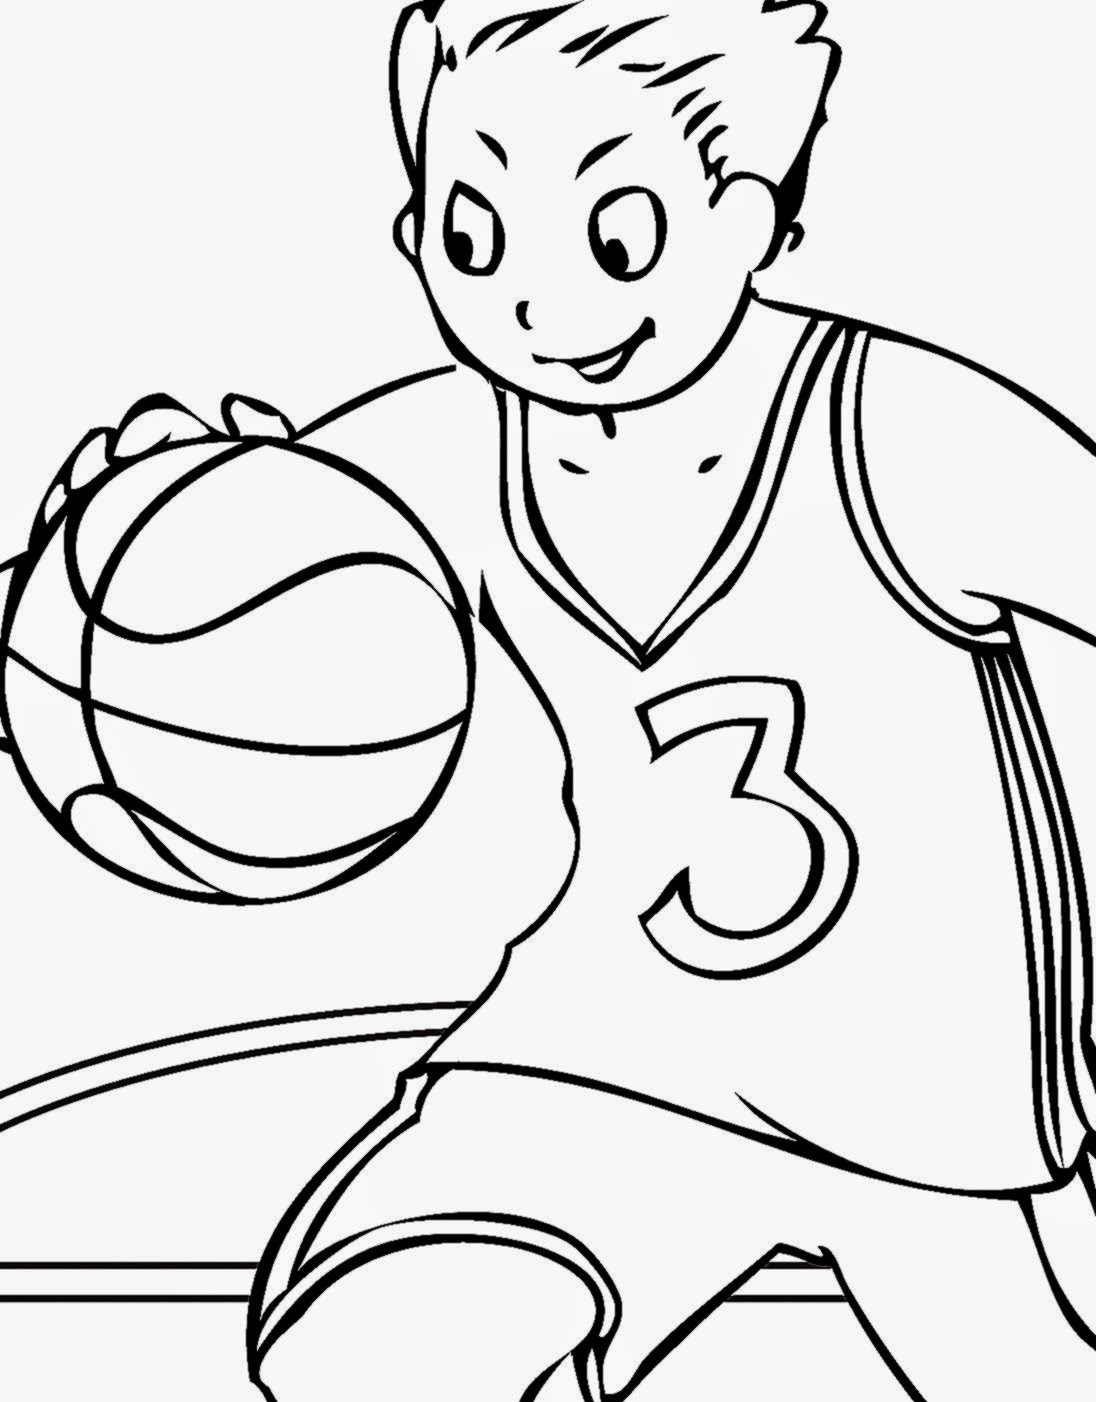 Basketball Coloring Pages Kidsuki